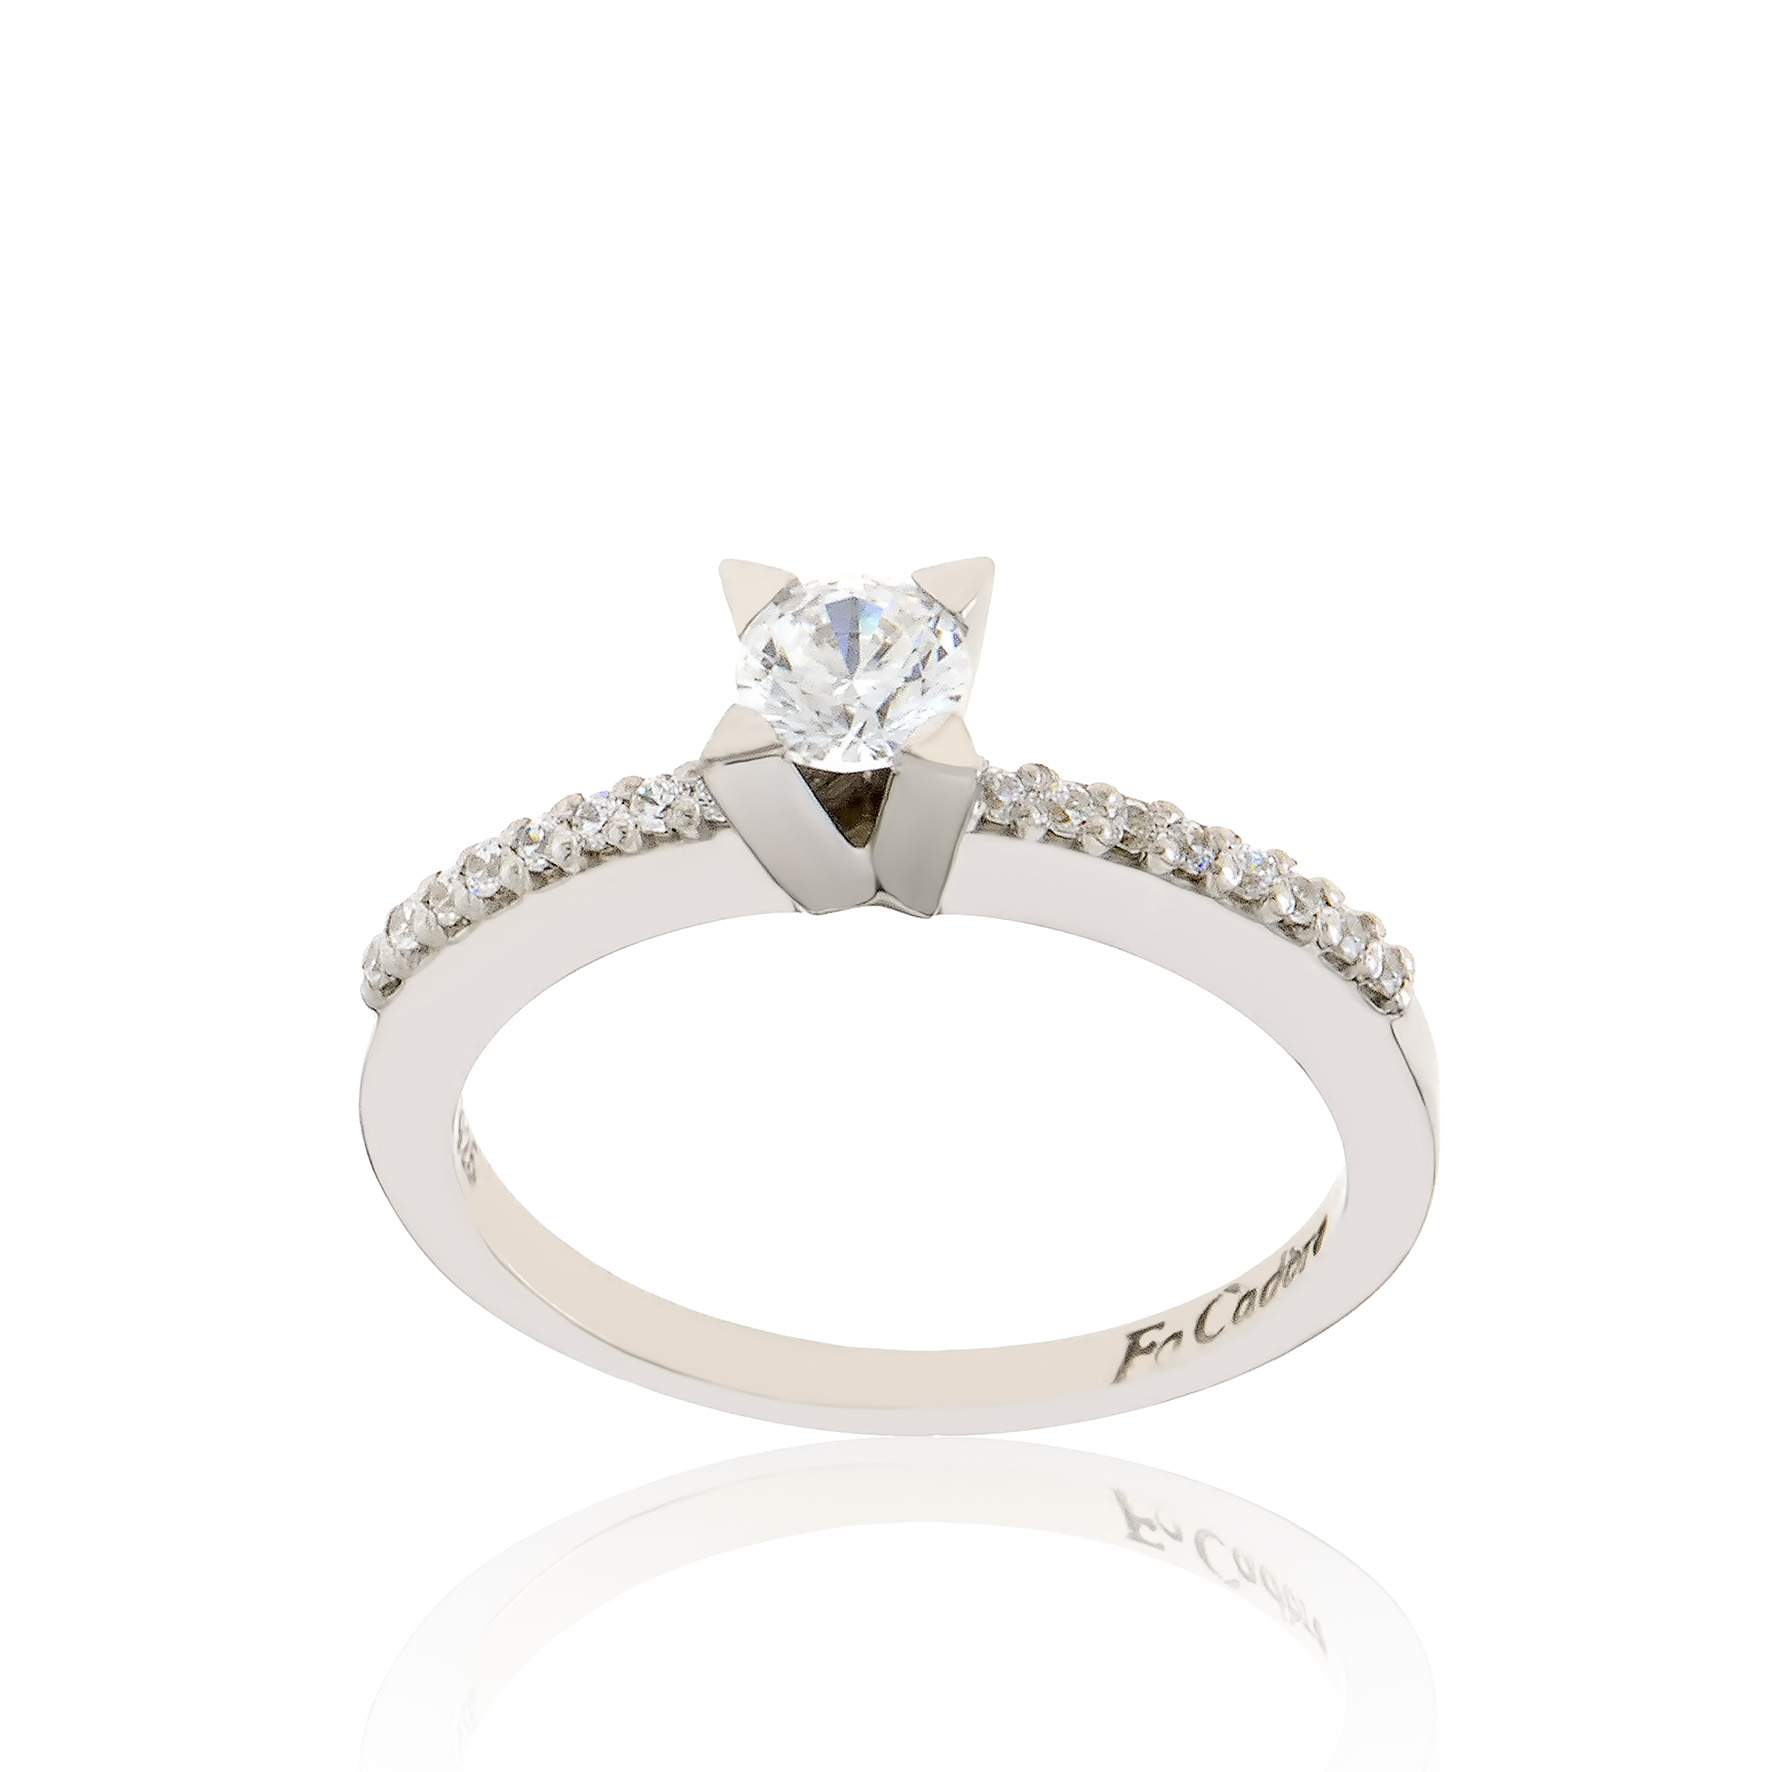 Stunning engagement rings by FaCad'oro